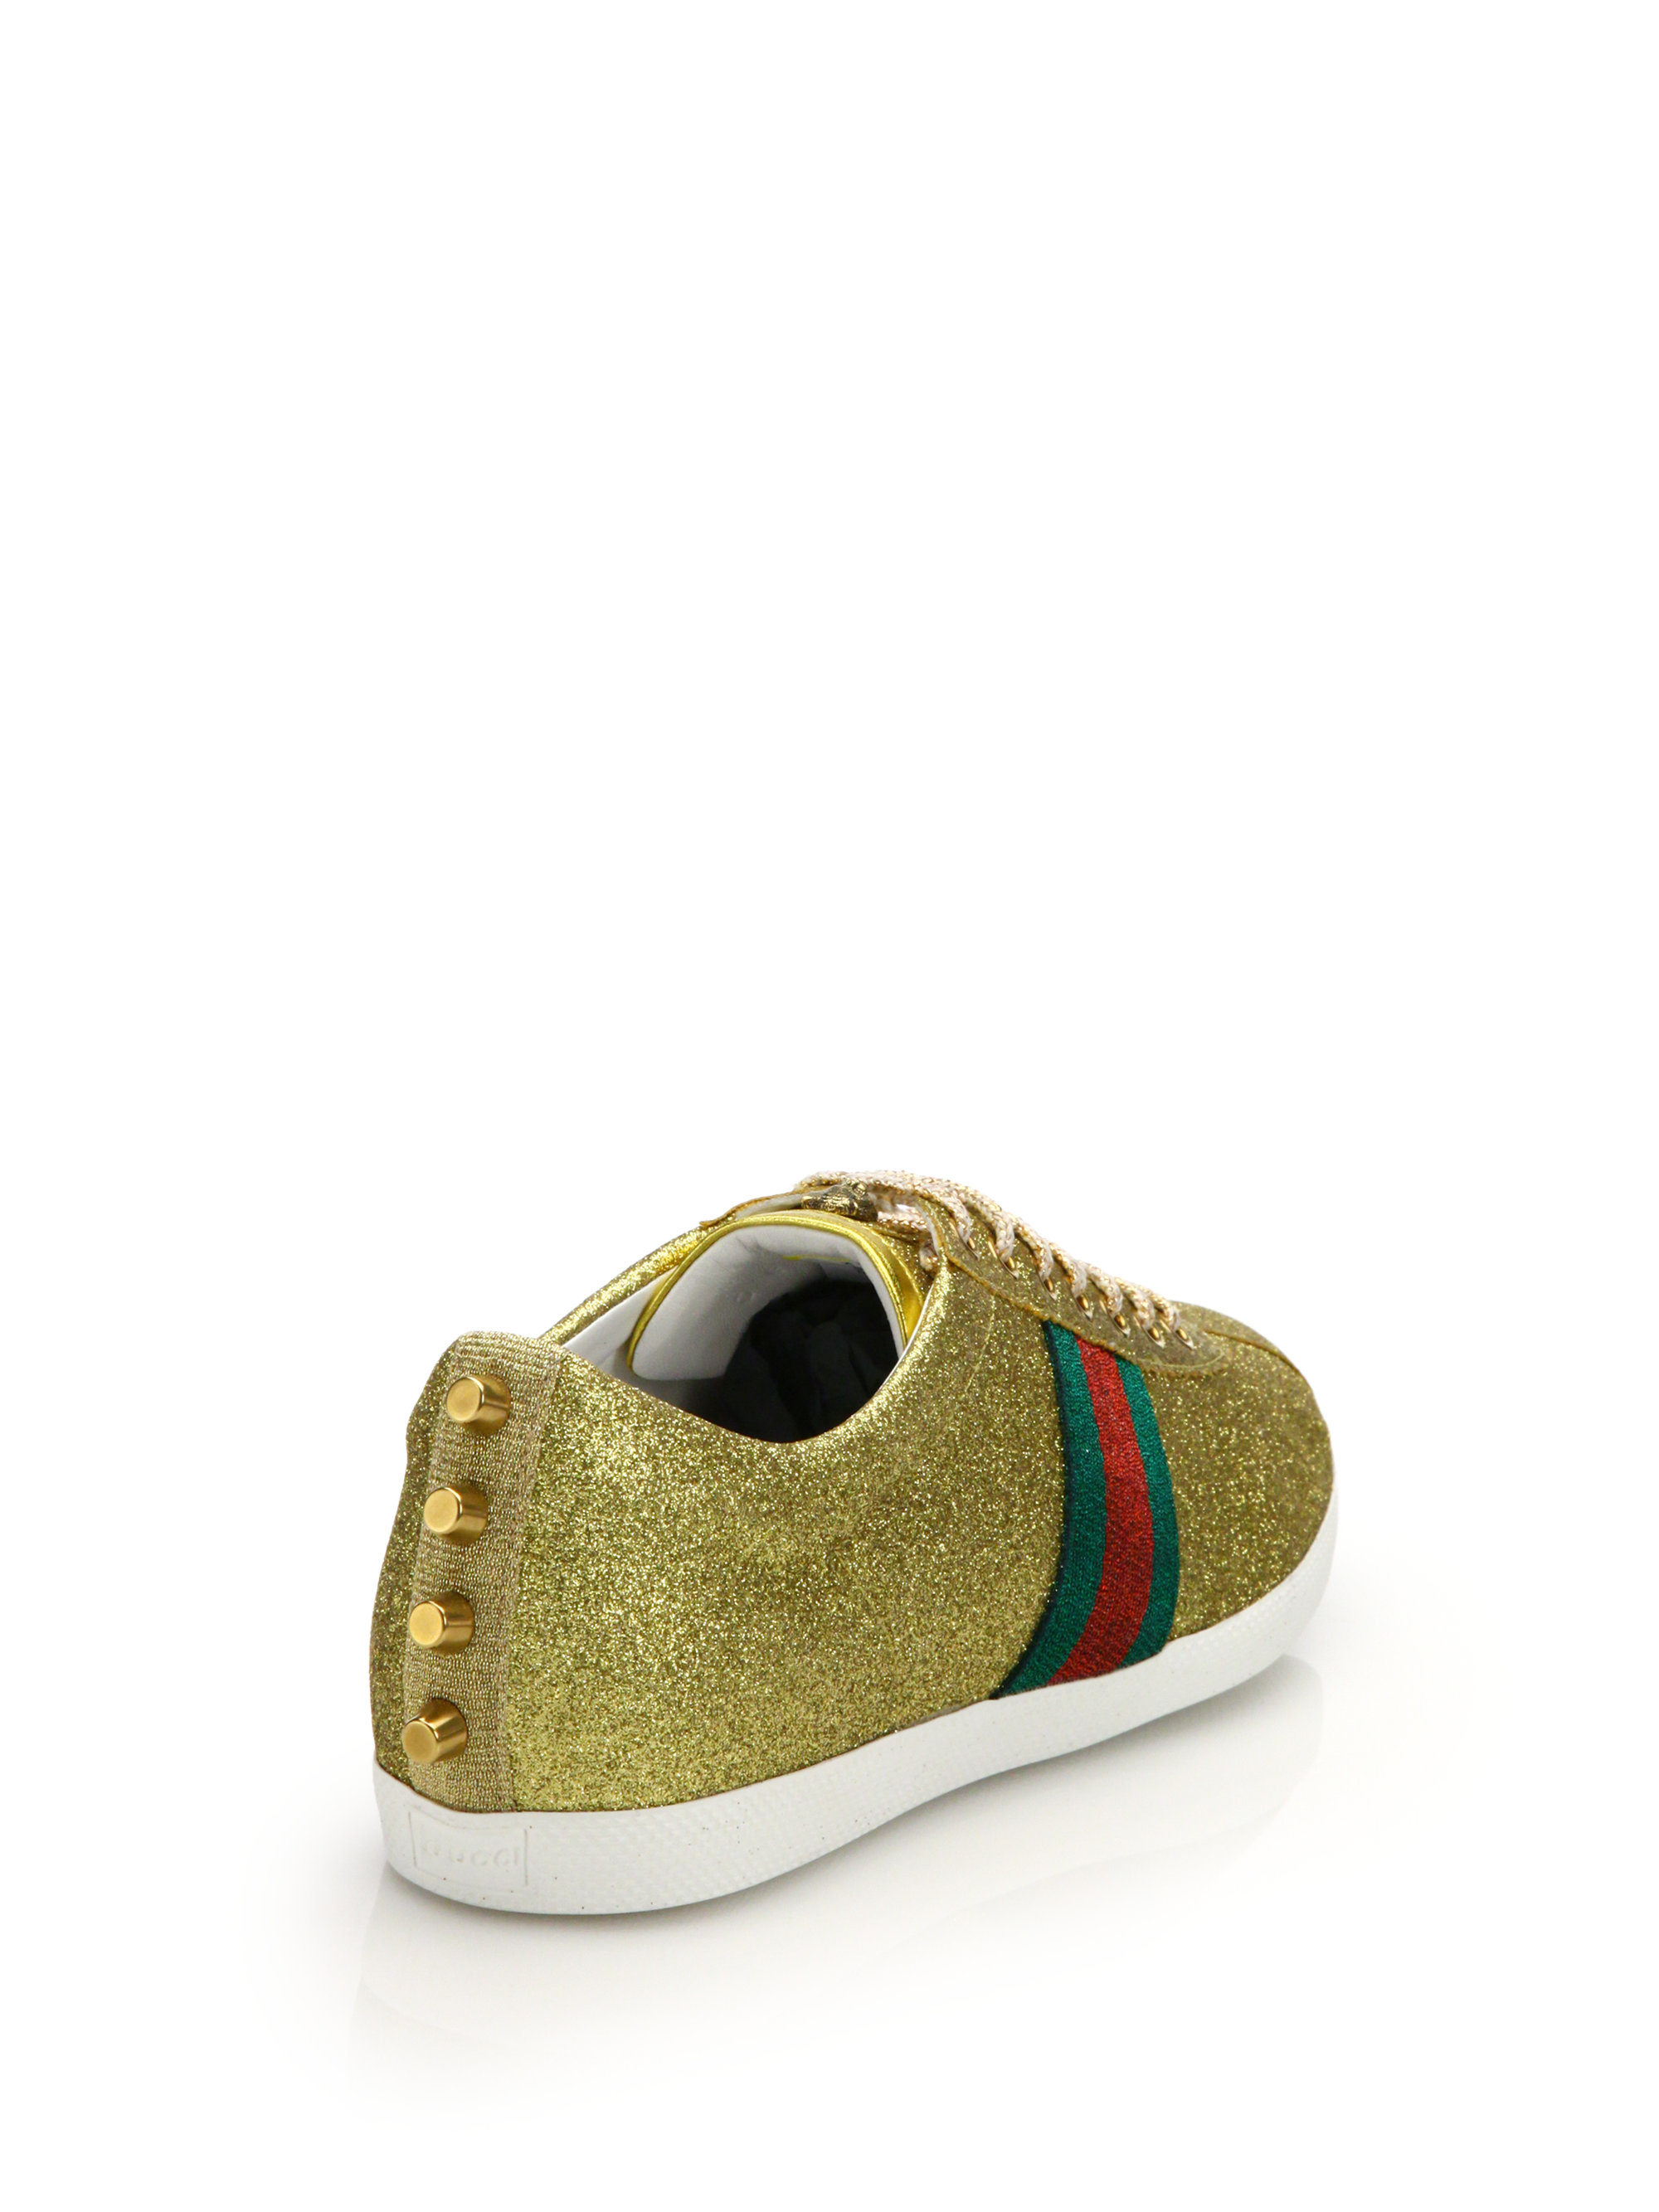 825a1b541 Gucci Bambi Web Studded Low-top Sneakers in Metallic - Lyst